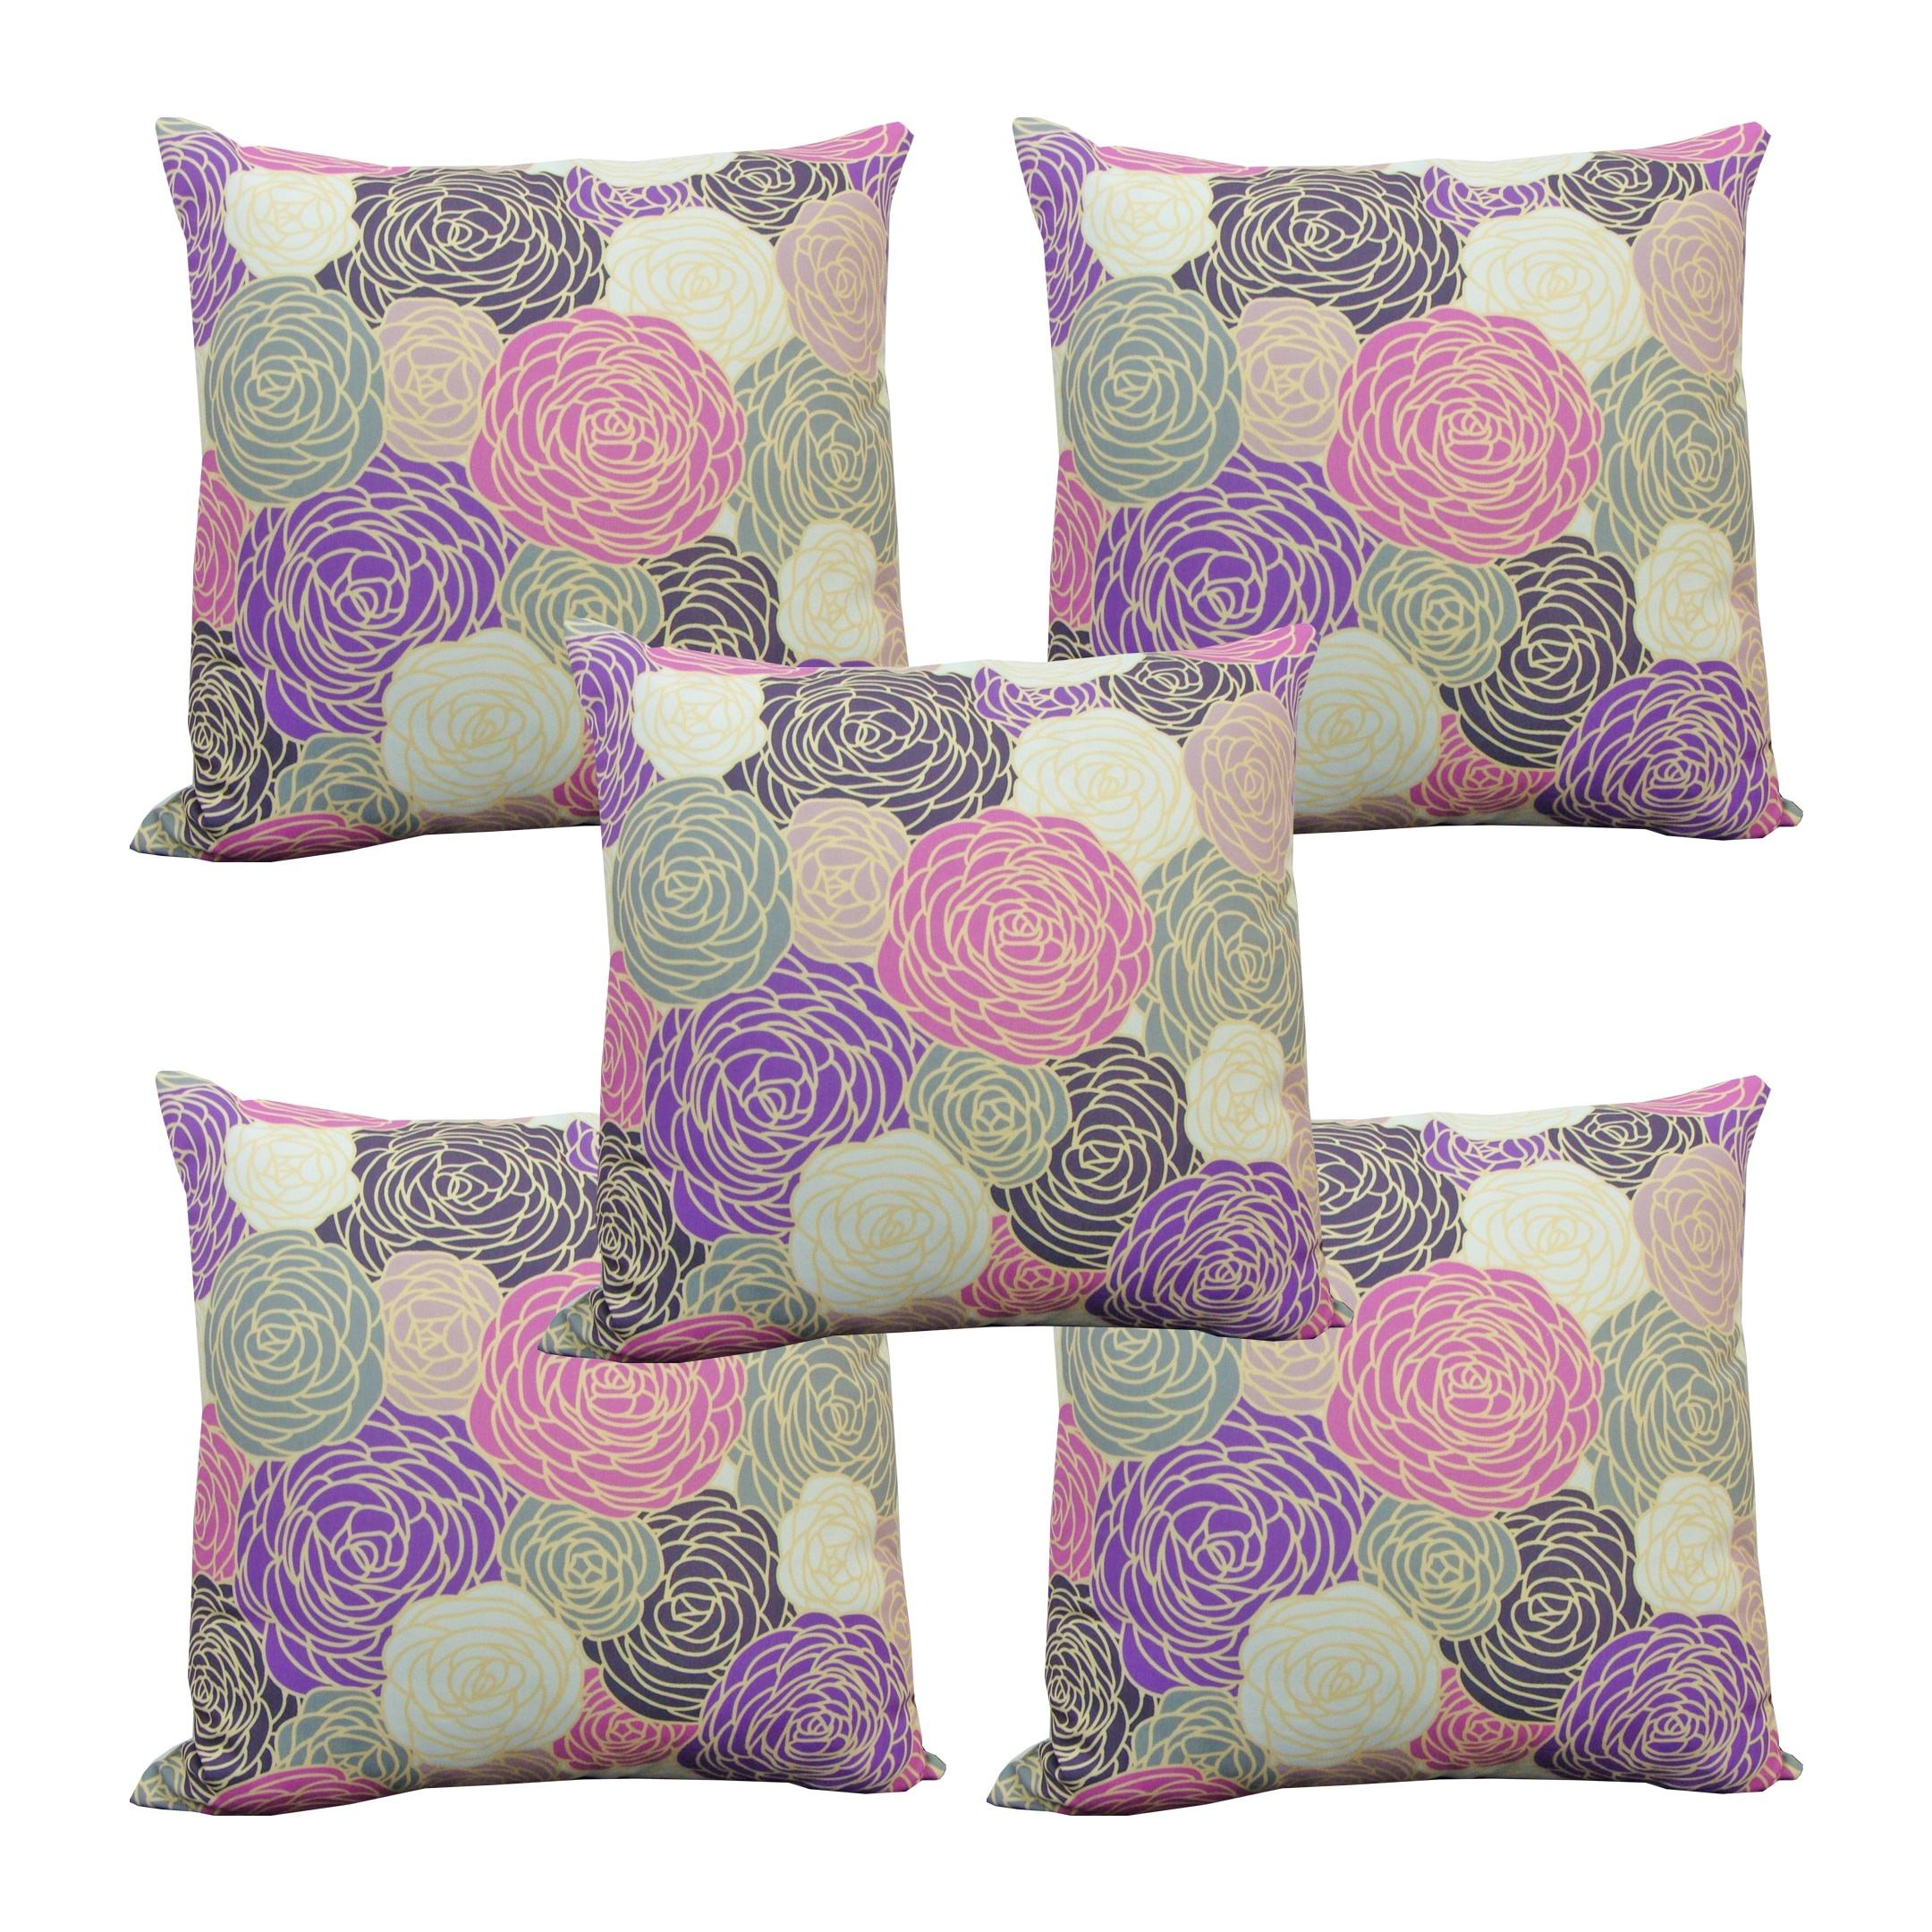 2019 new style cushion cover in digital printing cushion cover from India